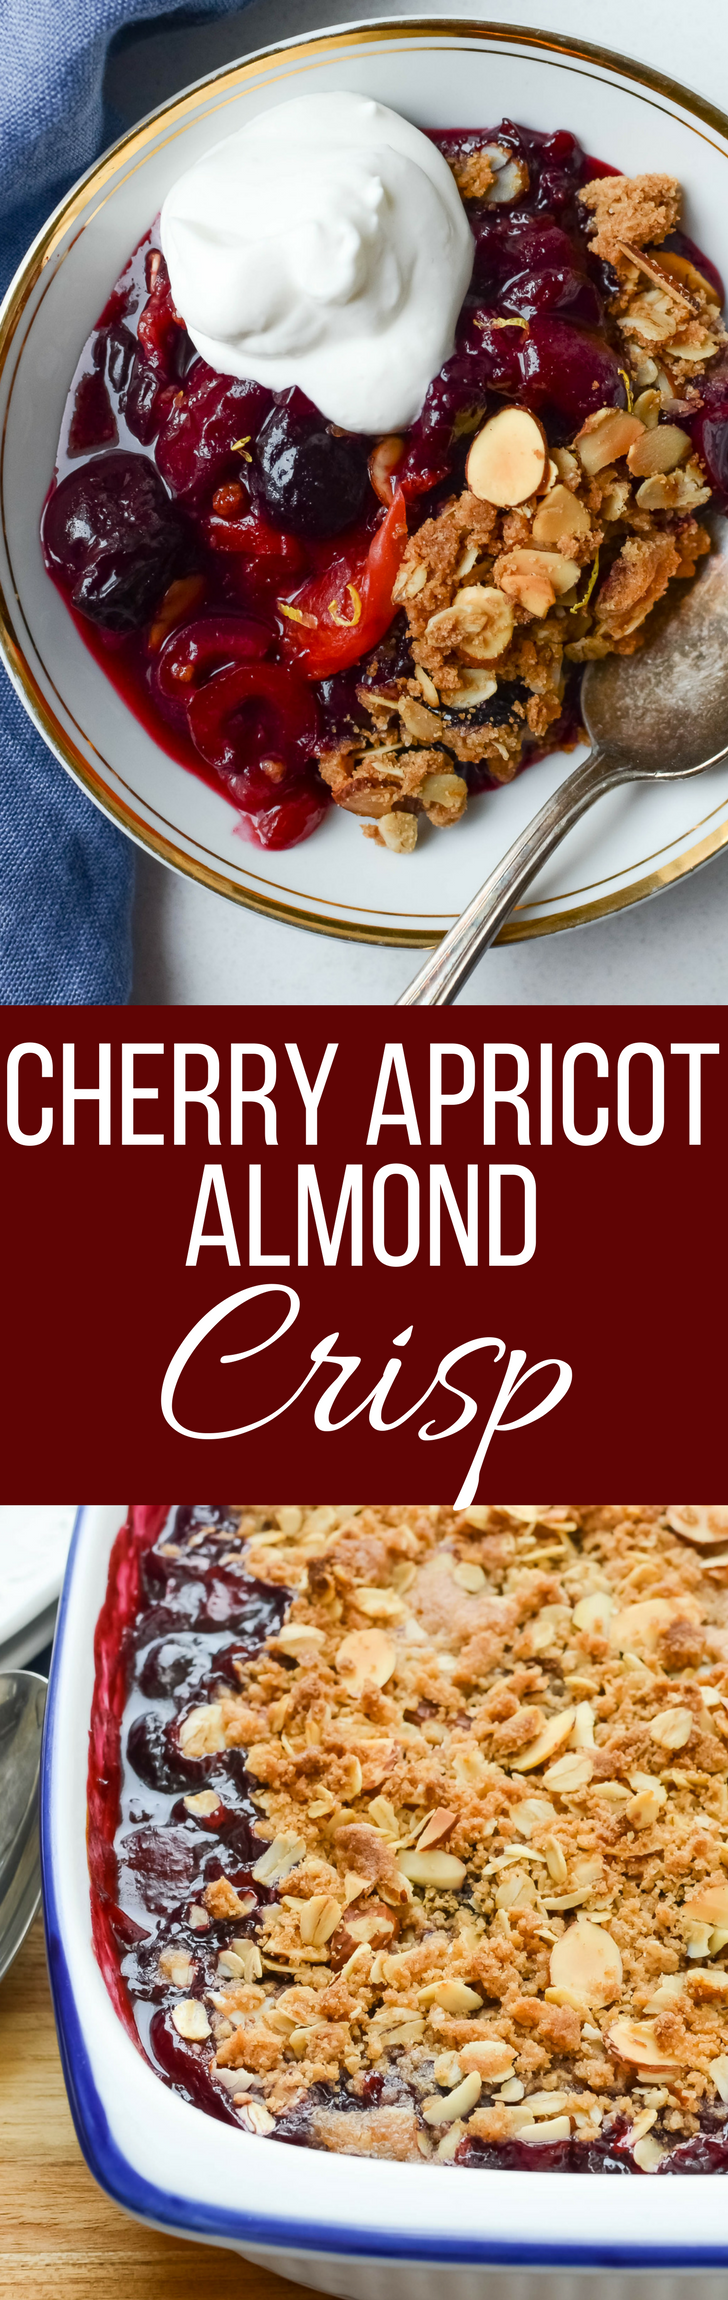 Cherry Apricot Almond Crisp is the best way to use up cherries and apricots.  This simple recipe is topped with a heavenly cinnamon oat almond crumble.